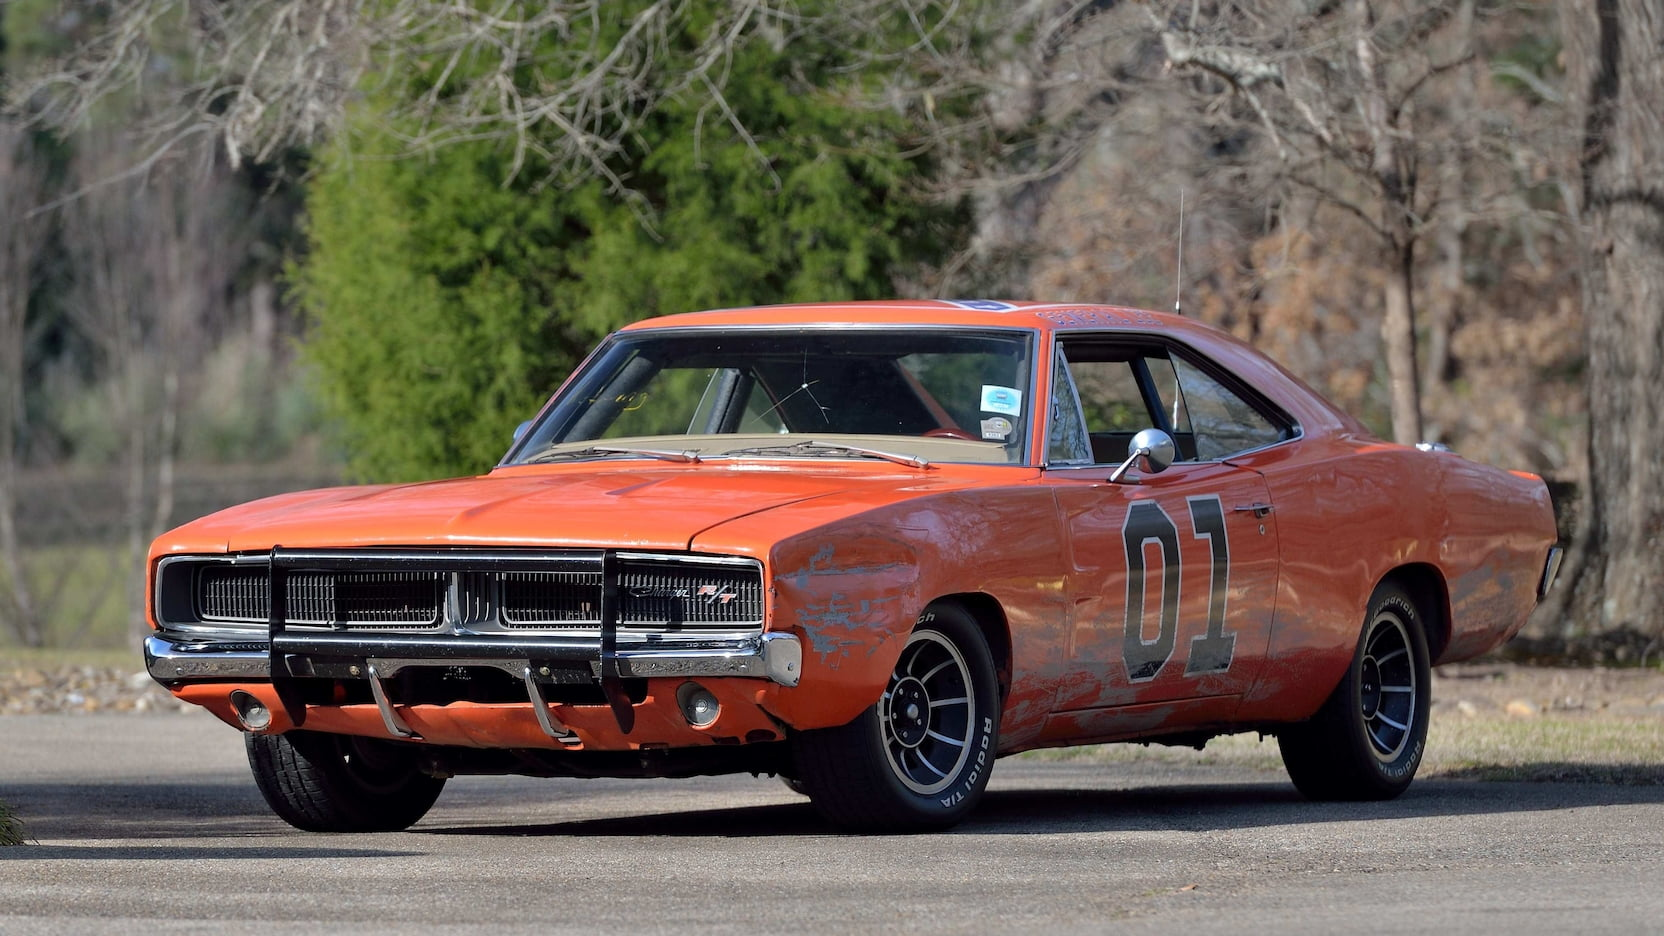 General Lee movie prop is the best excuse to dirt rally a muscle car thumbnail